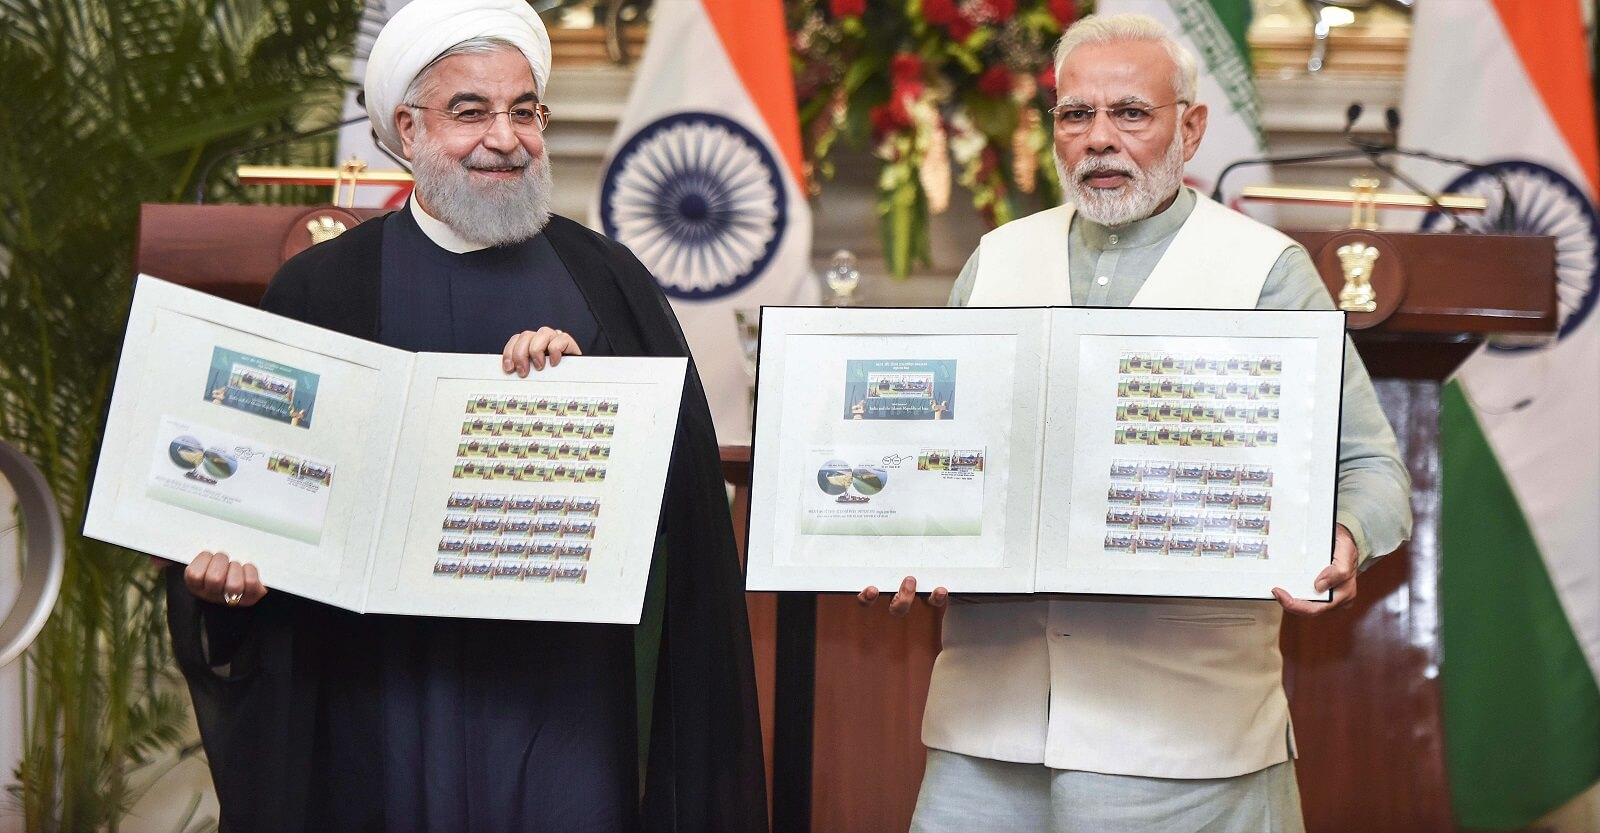 Iranian President Hassan Rouhani and Indian Prime Minister Narendra Modi at Hyderabad House, New Delhi, in February (Photo: Vipin Kumar/Hindustan Times via Getty)